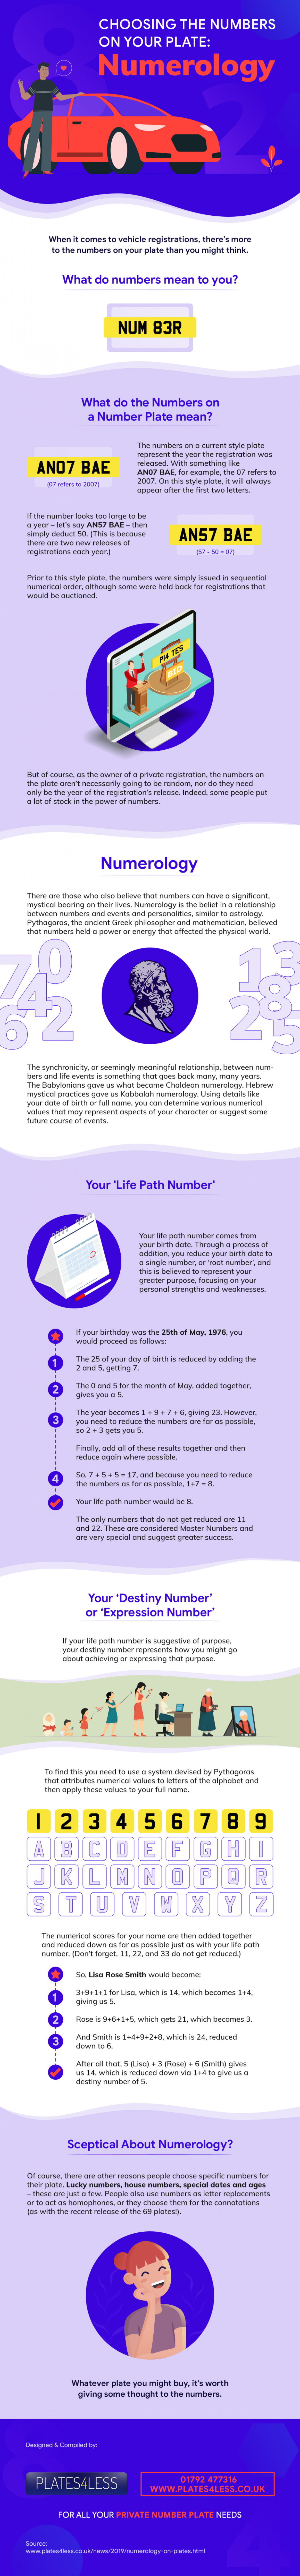 Choosing the Numbers on Your Plate Numerology Infographic